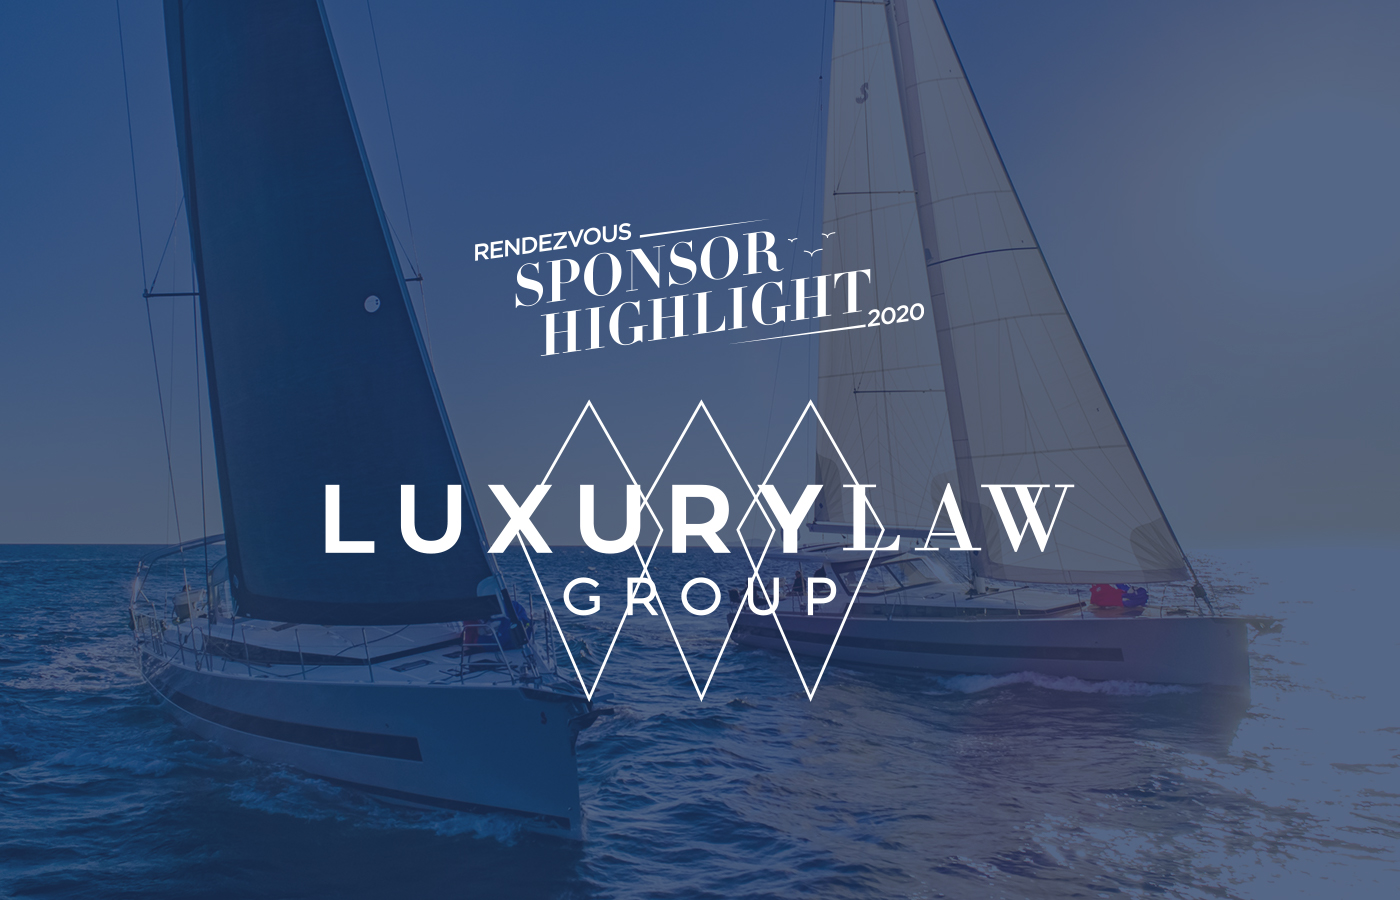 Rendezvous Sponsor Highlight: Luxury Law Group